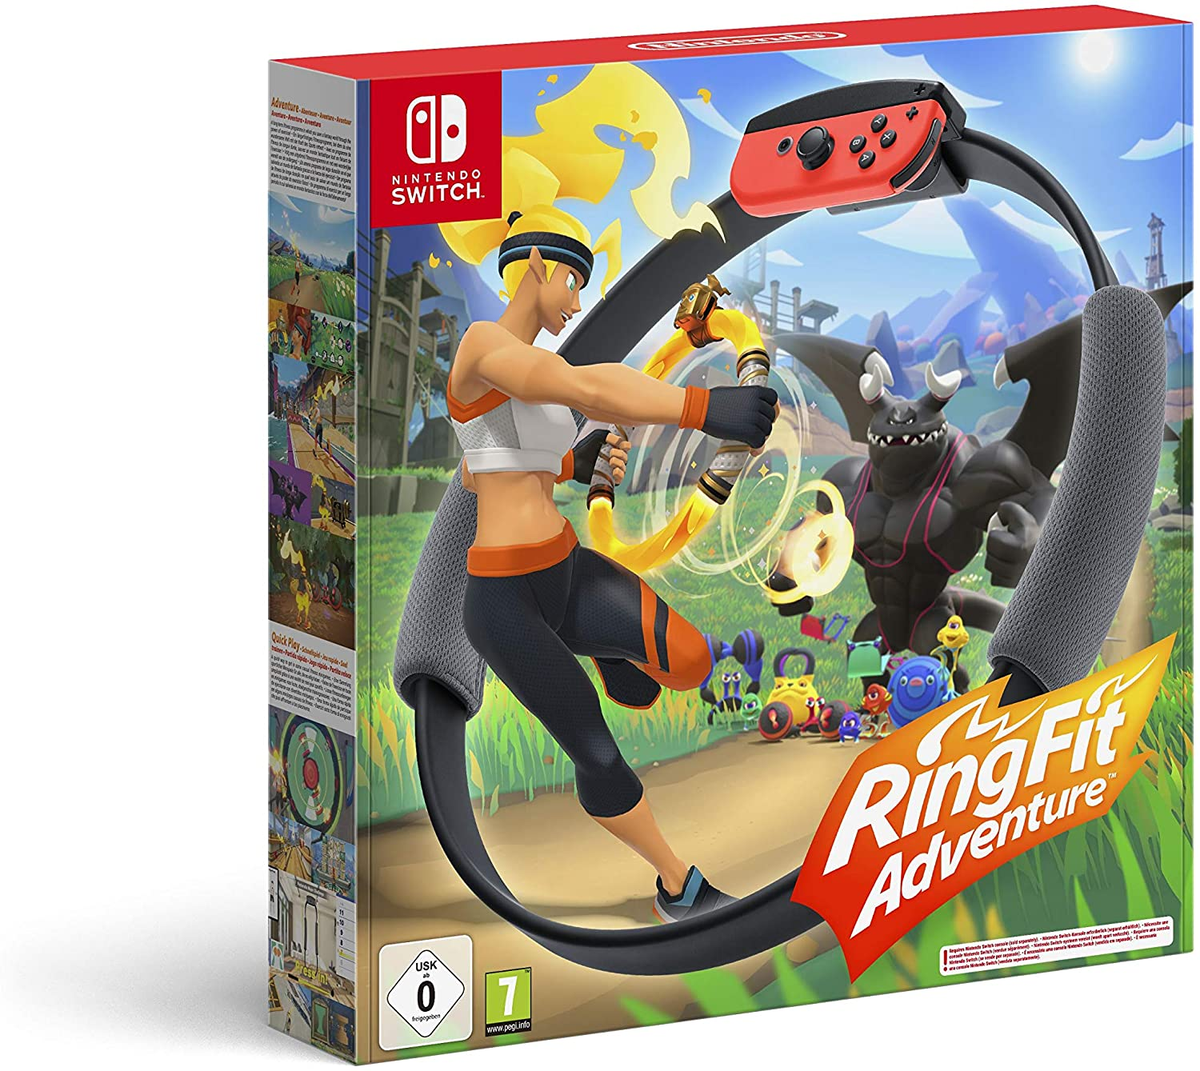 £64.99 & FREE Delivery   Ring Fit Adventure (Nintendo Switch)   @AmazonUK   #ad #staysafe